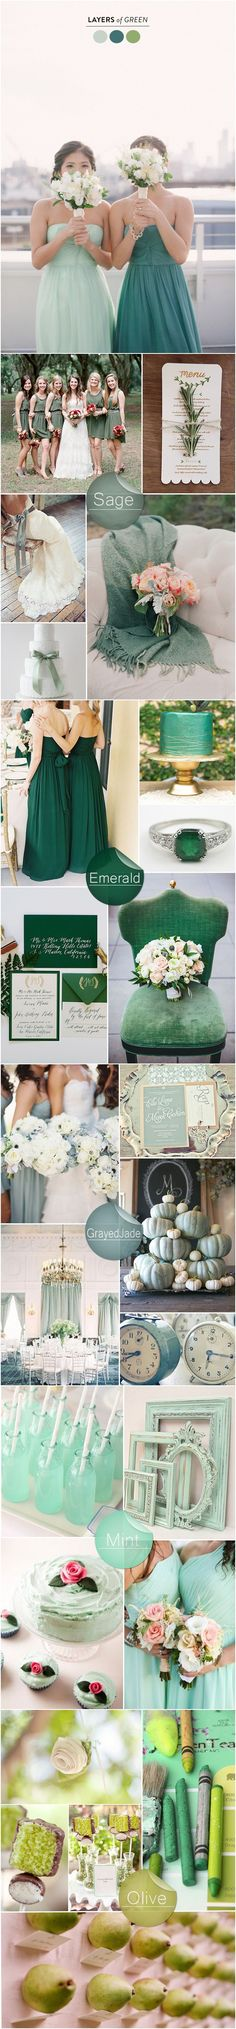 6 Perfect Shades of Green Wedding Color Ideas 2015 Trends #weddingcolors #weddingideas